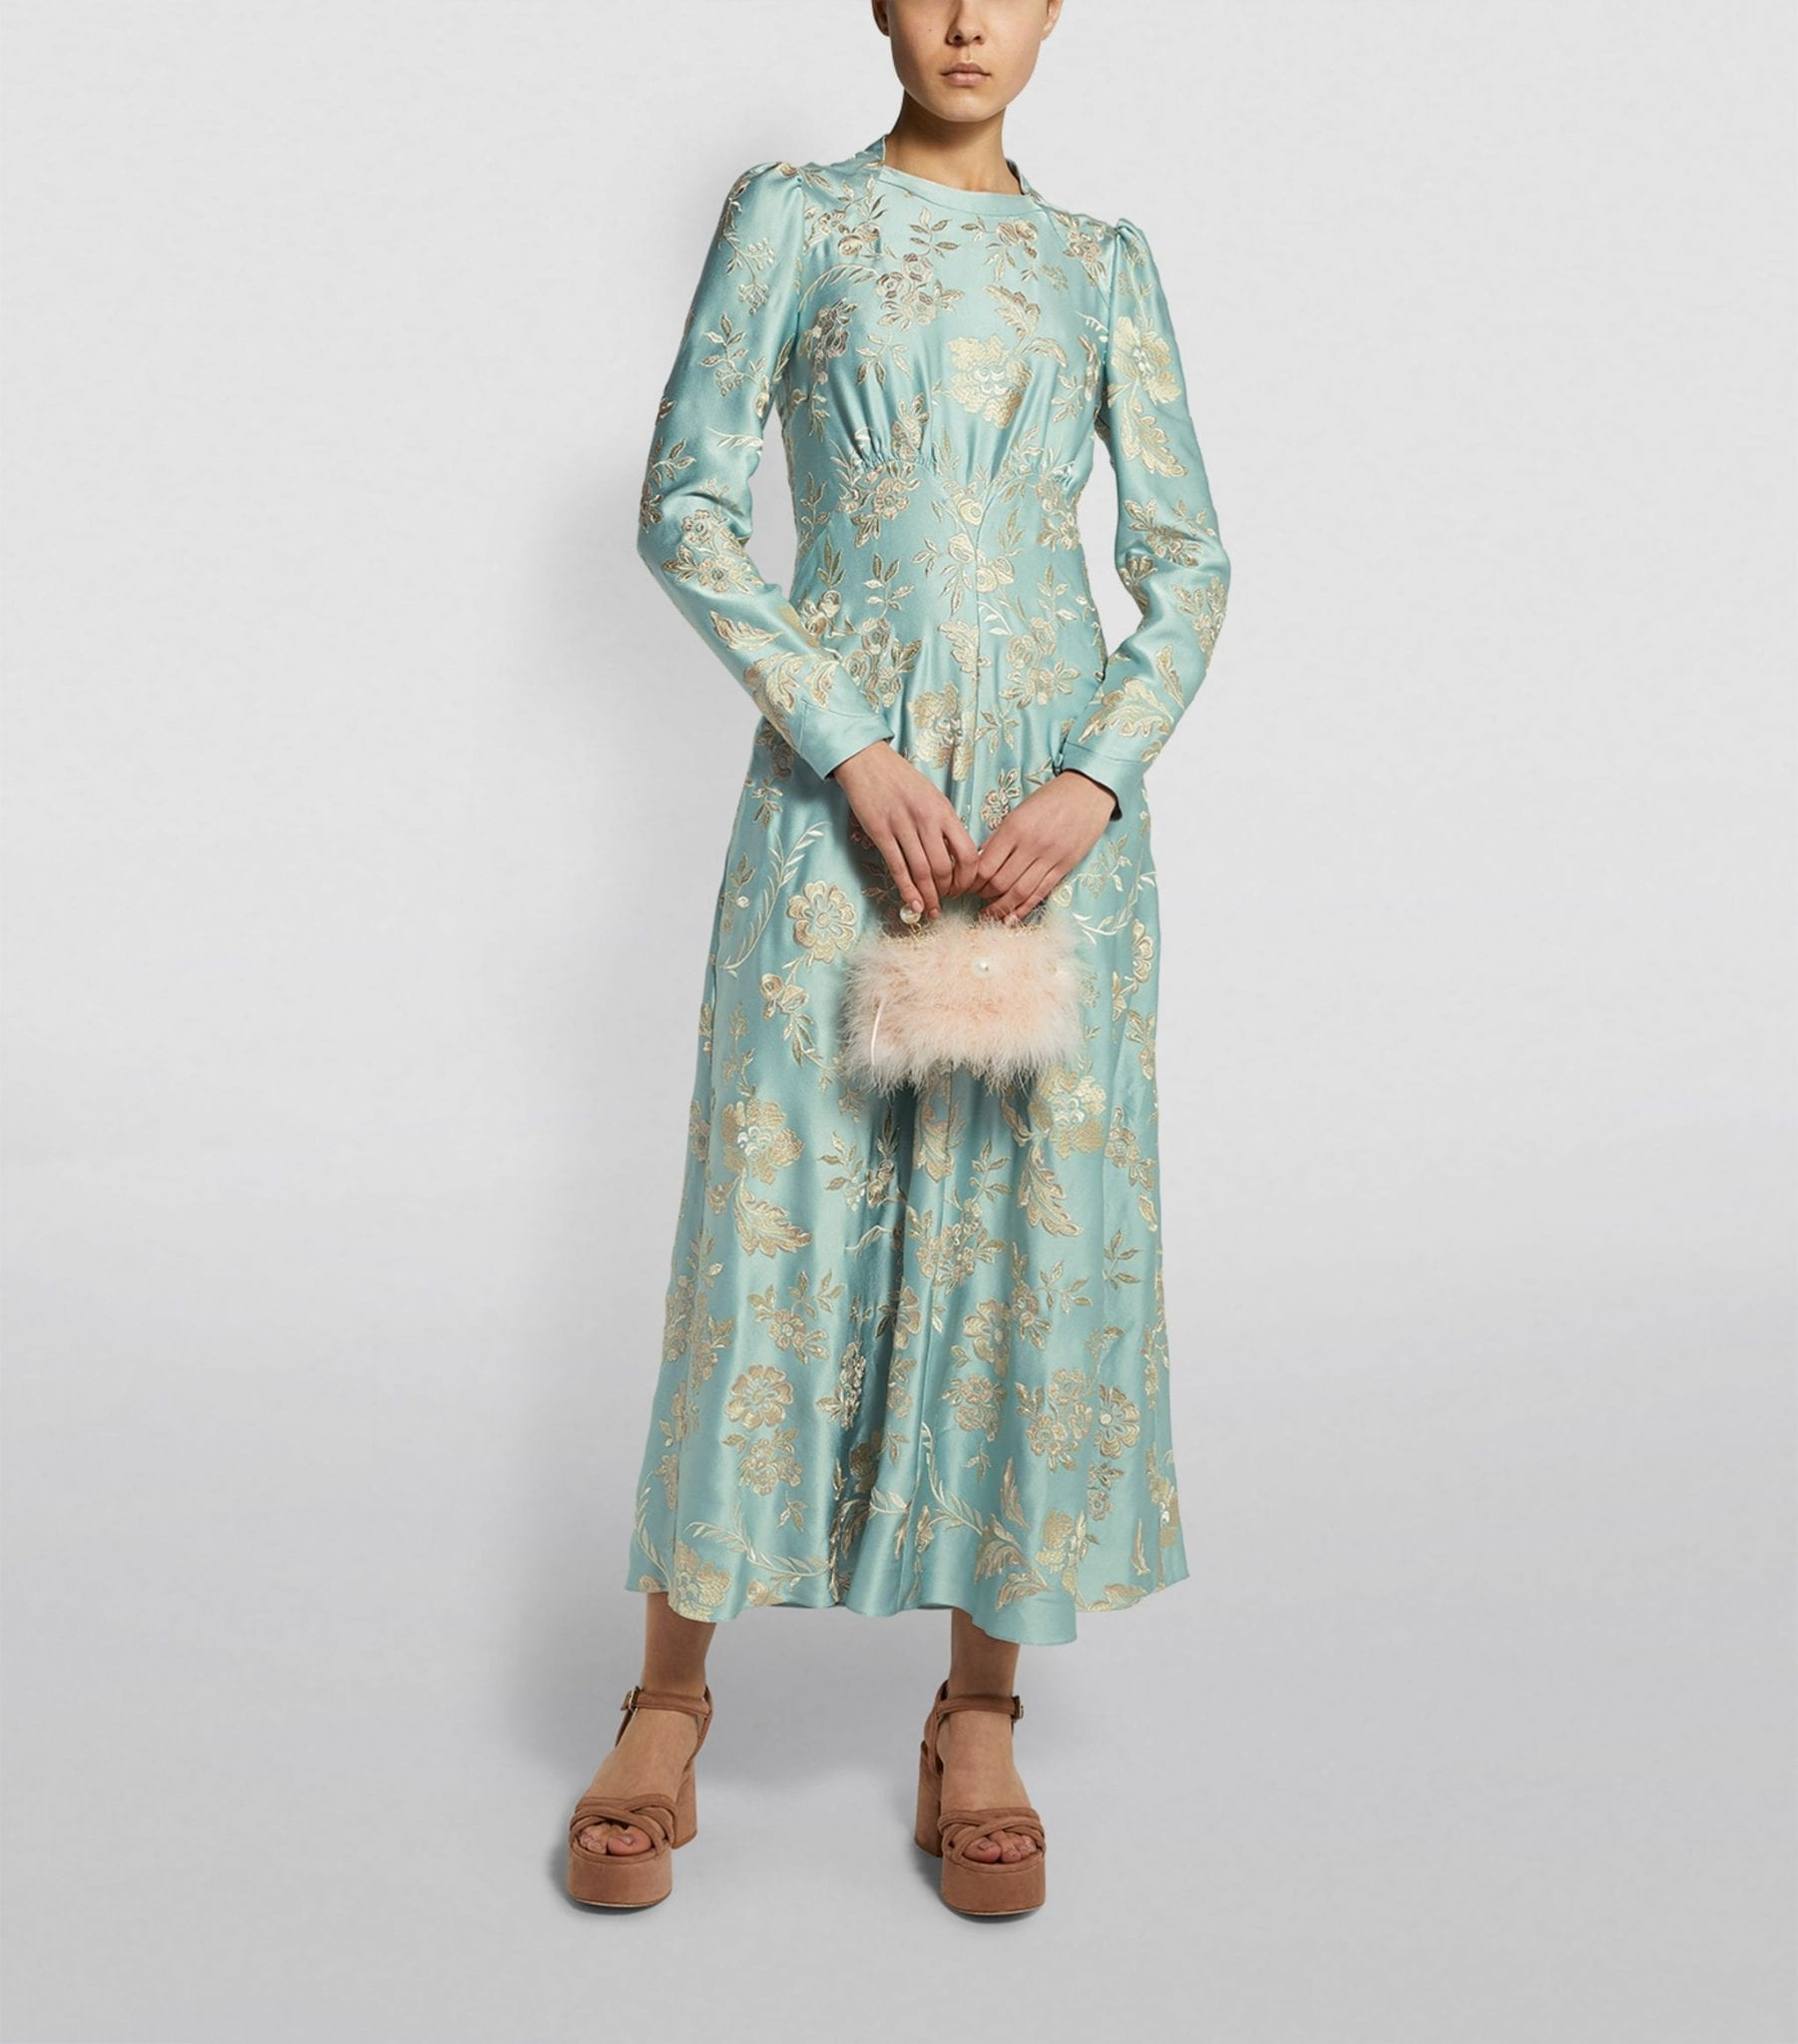 ERDEM Jacquard Brinton Maxi Dress